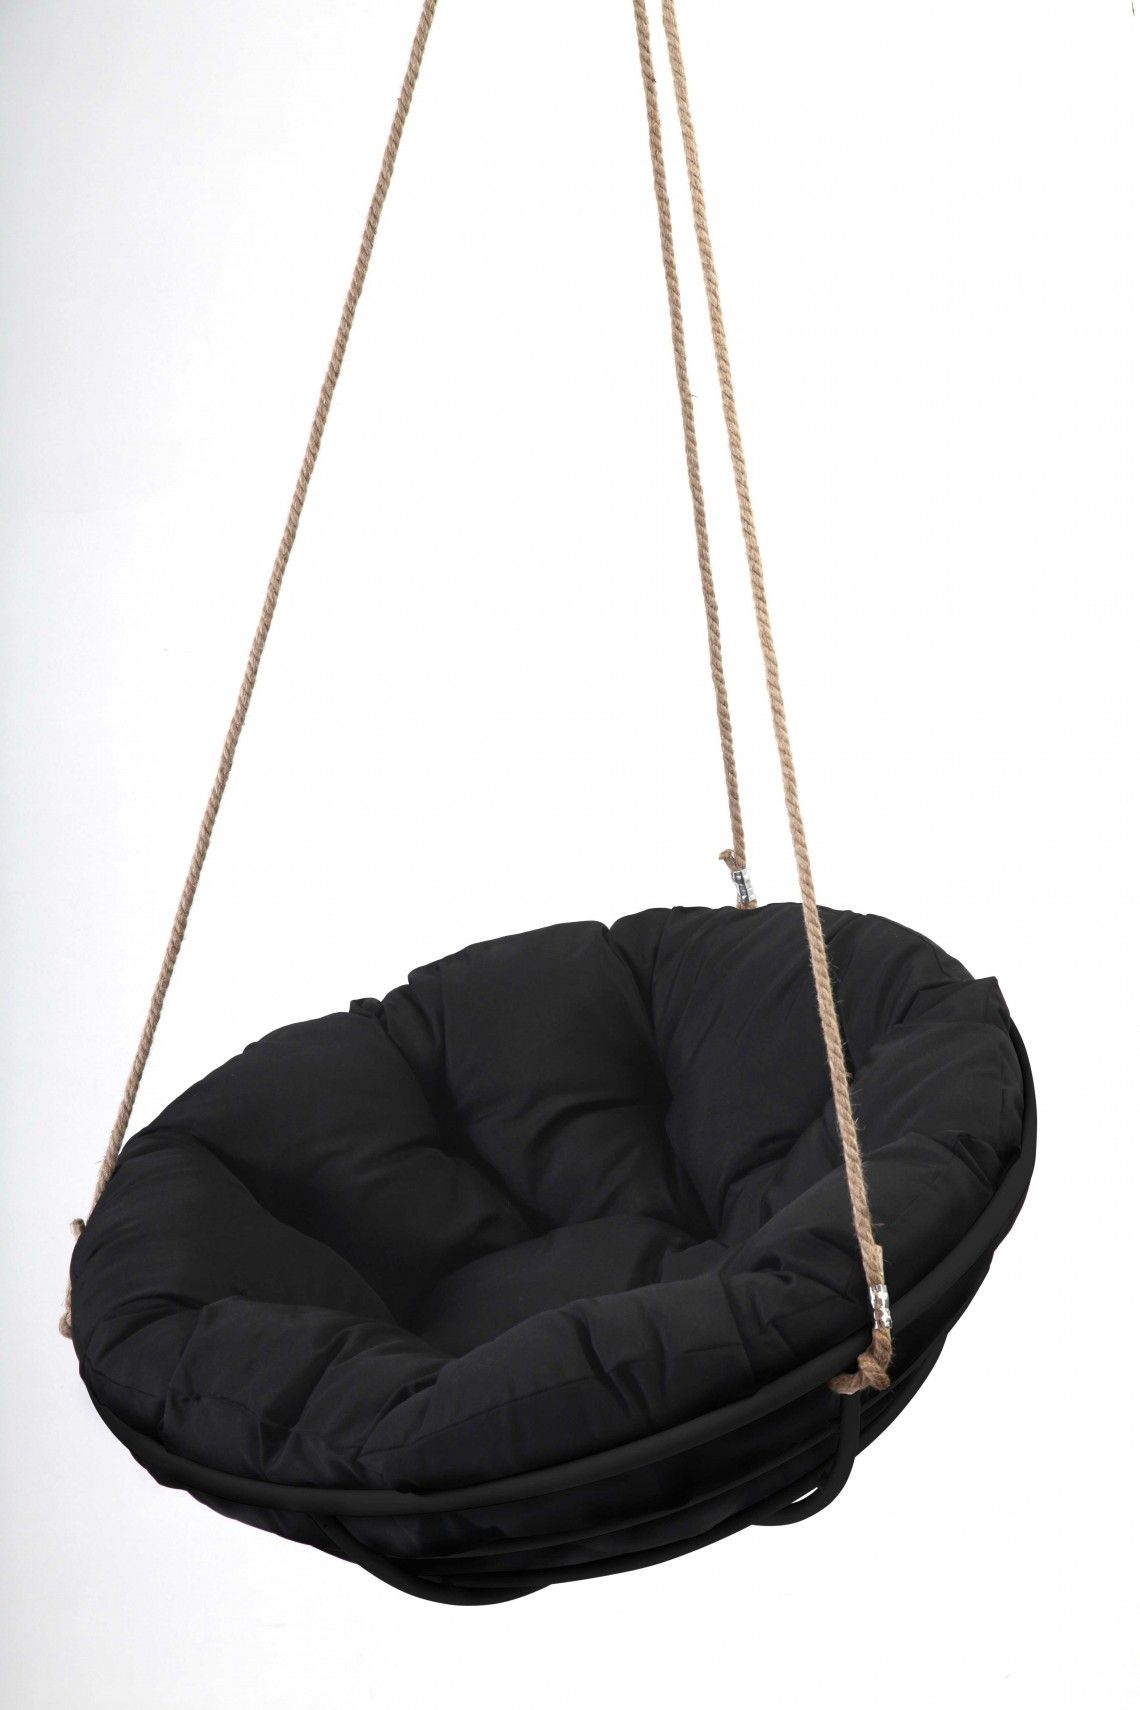 Black Framed Hanging Papasan With Rope Papsan Chair Outdoor